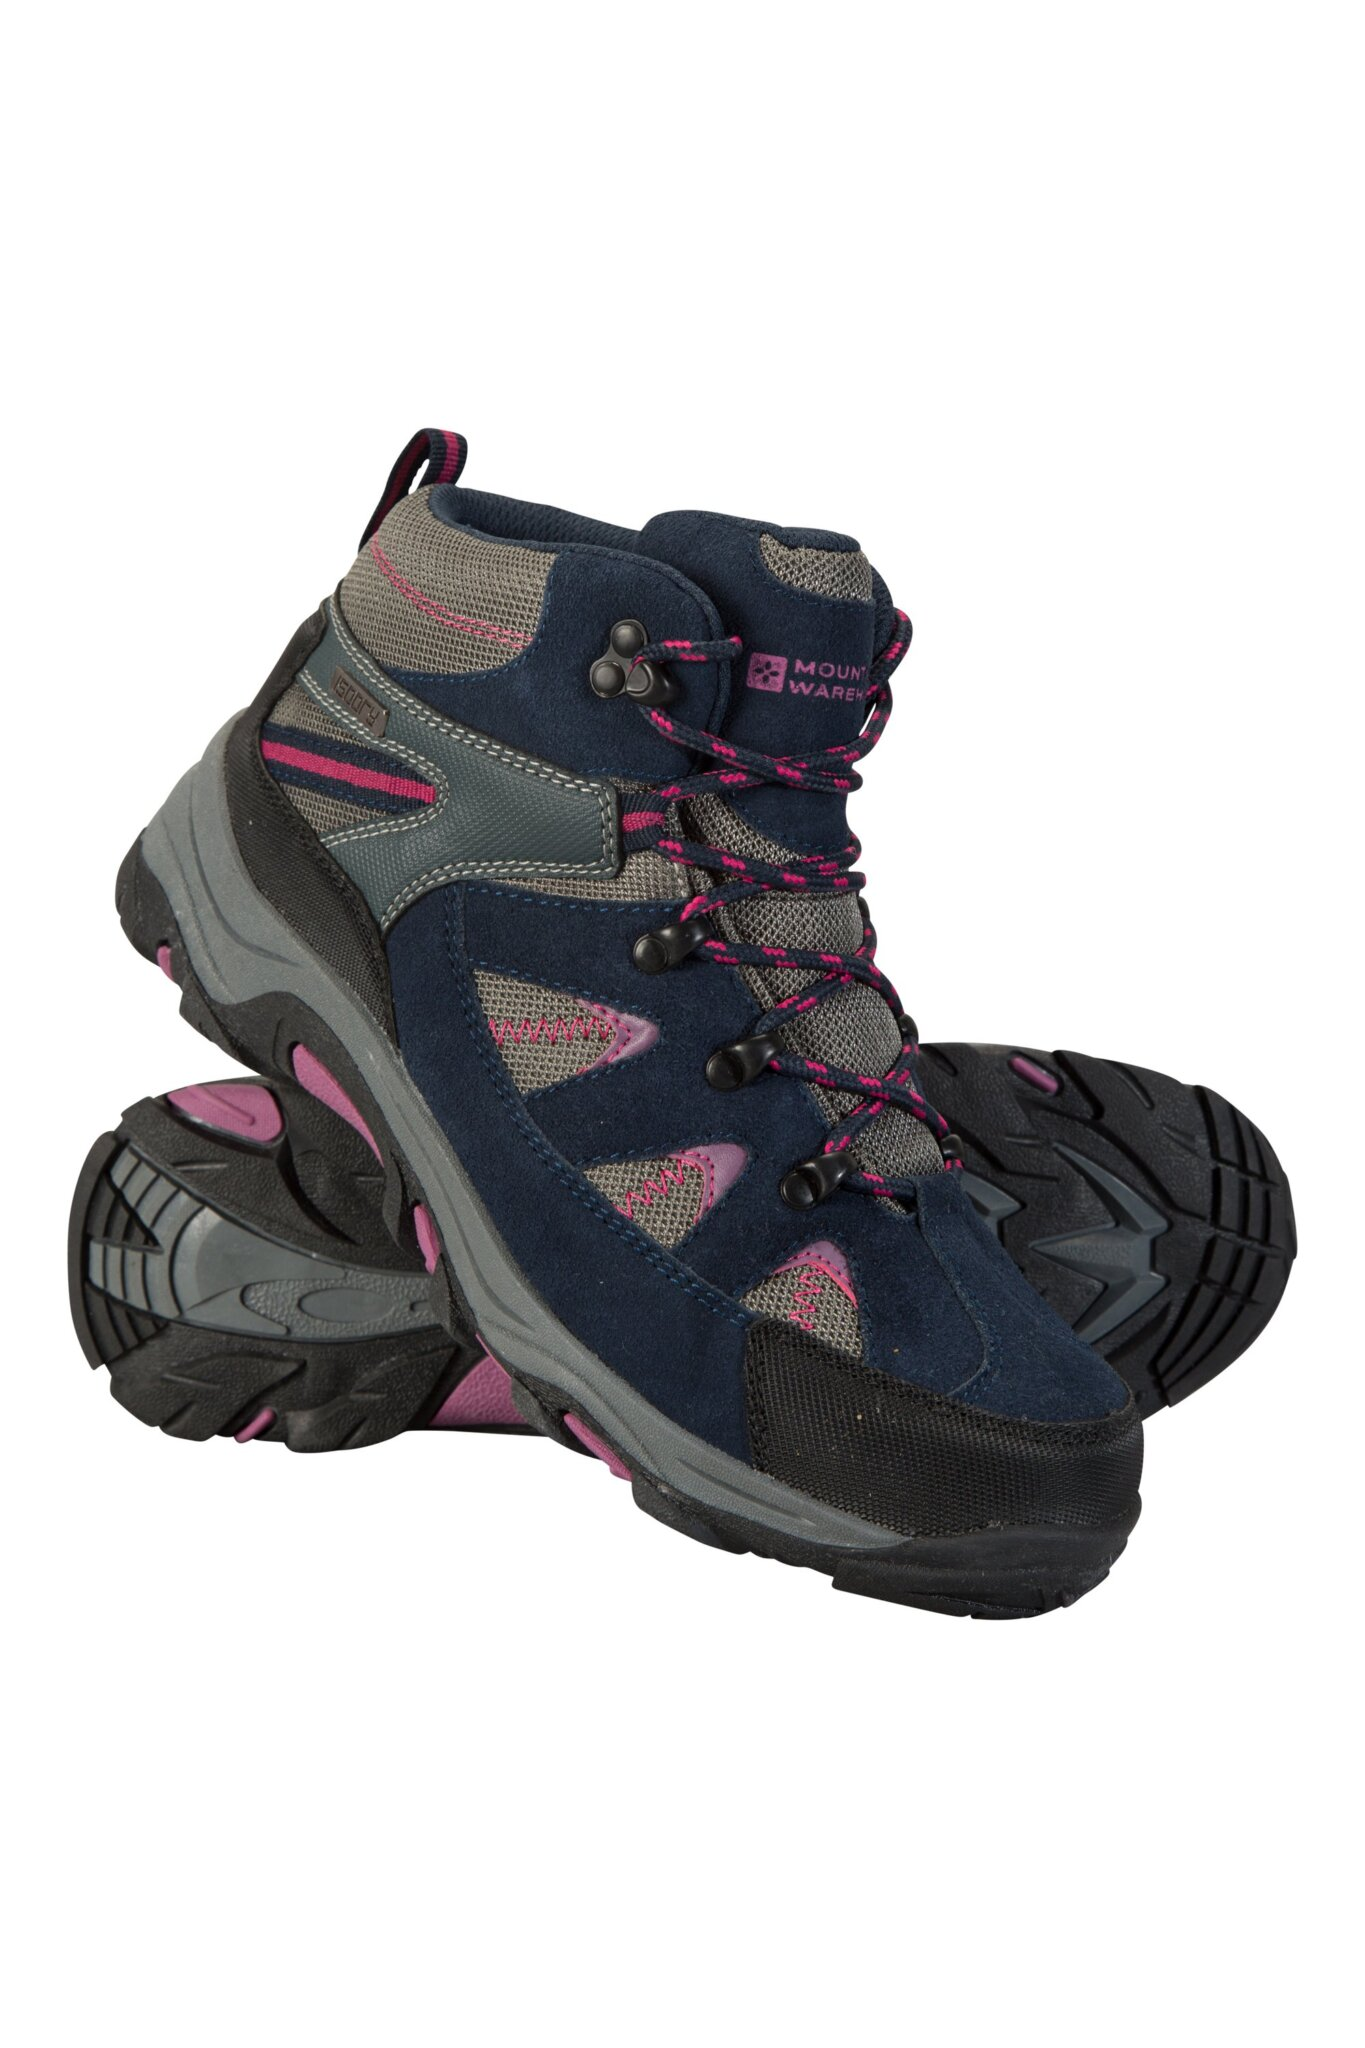 Mountain Warehouse Rapid Womens Waterproof Boots Ladies Hiking Shoes